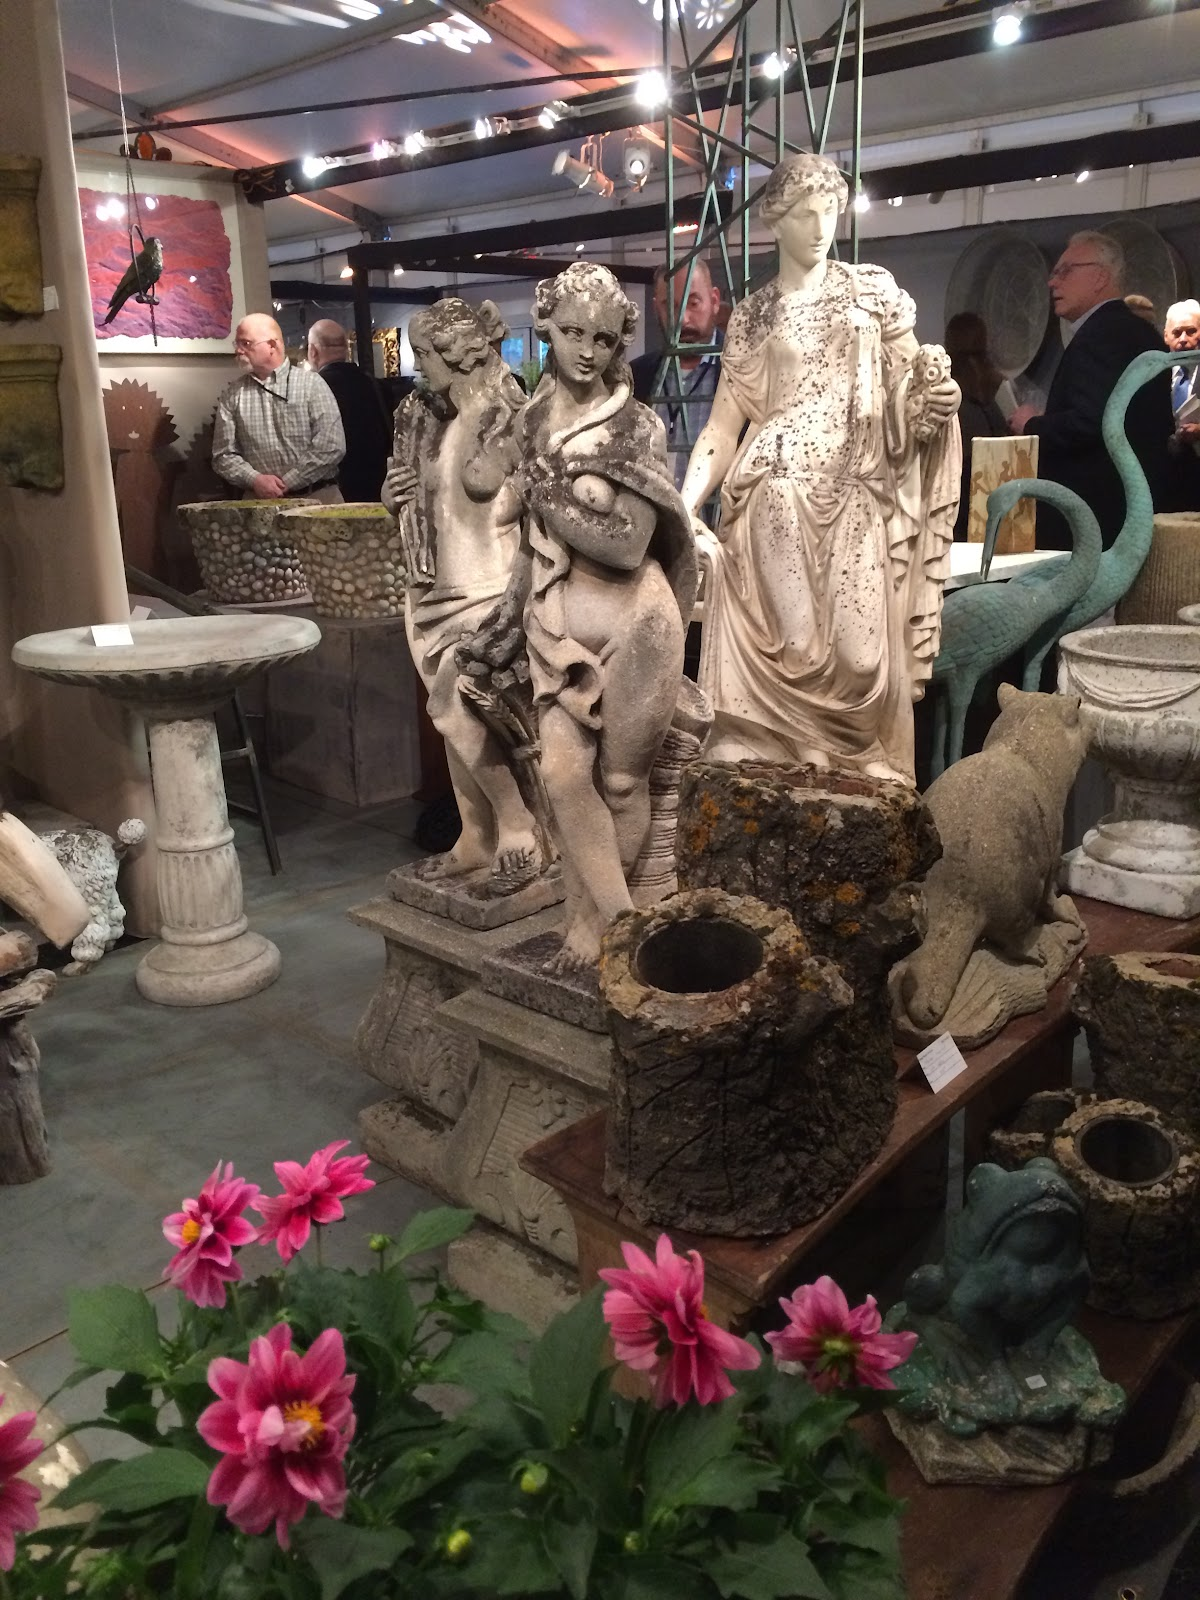 And The BEST Part Is That Mariau0027s Keen Eye For Art And Antiques And All  Things Beautiful    Snagged The Incredible Four Seasons Statues!